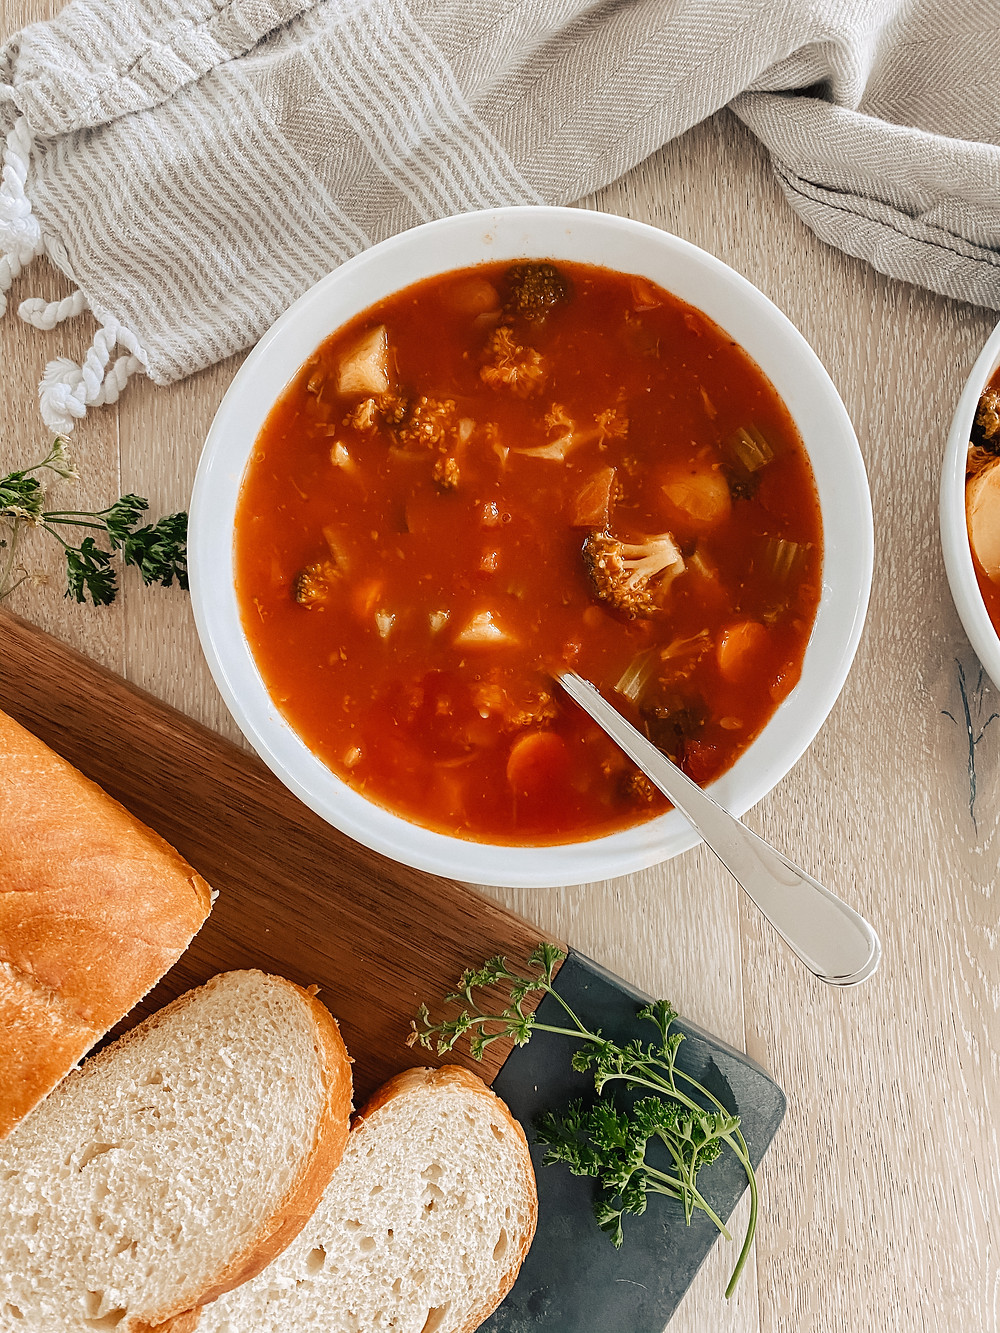 A bowl of hearty vegetable soup sits on the table surrounded by a grey tea towel, sliced bread and fresh herbs.